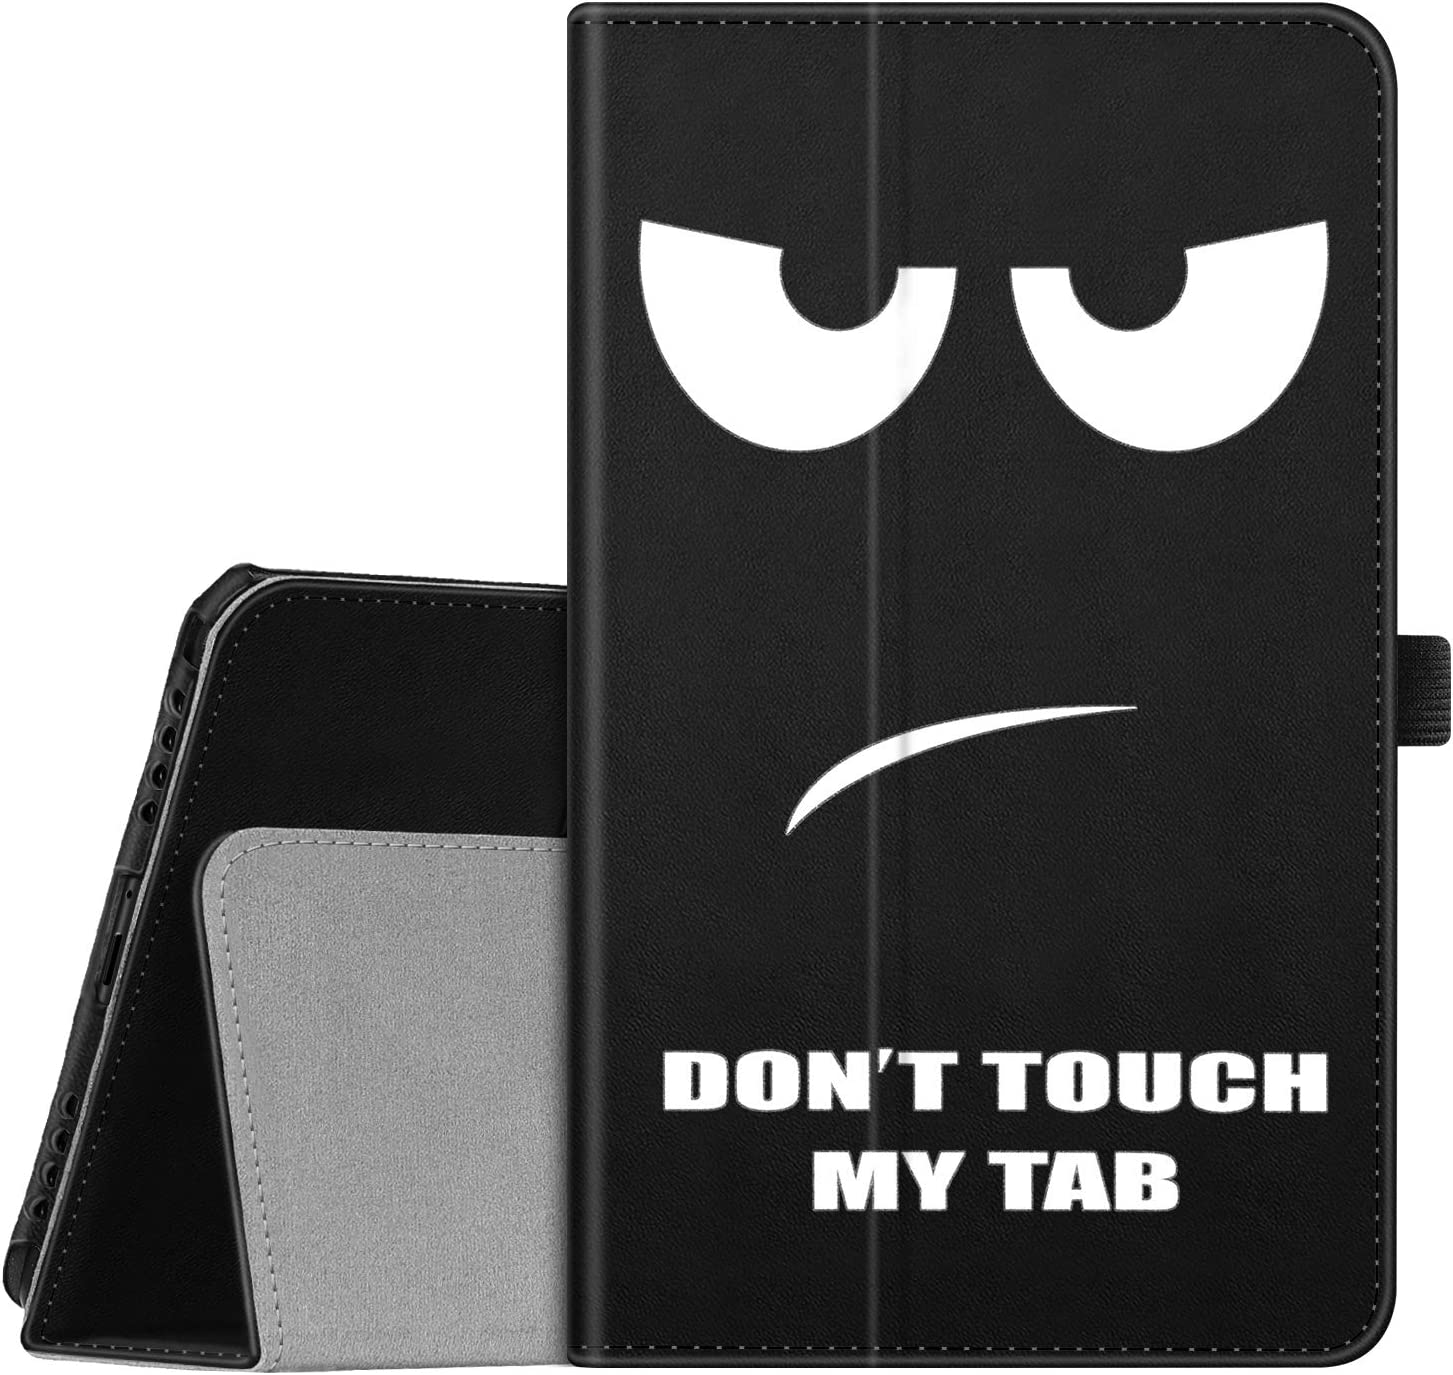 Fintie Folio Case for Samsung Galaxy Tab A 8.0 2019 Without S Pen Model (SM-T290 Wi-Fi, SM-T295 LTE), [Corner Protection] Slim Fit Premium Vegan Leather Stand Cover, Dont Touch